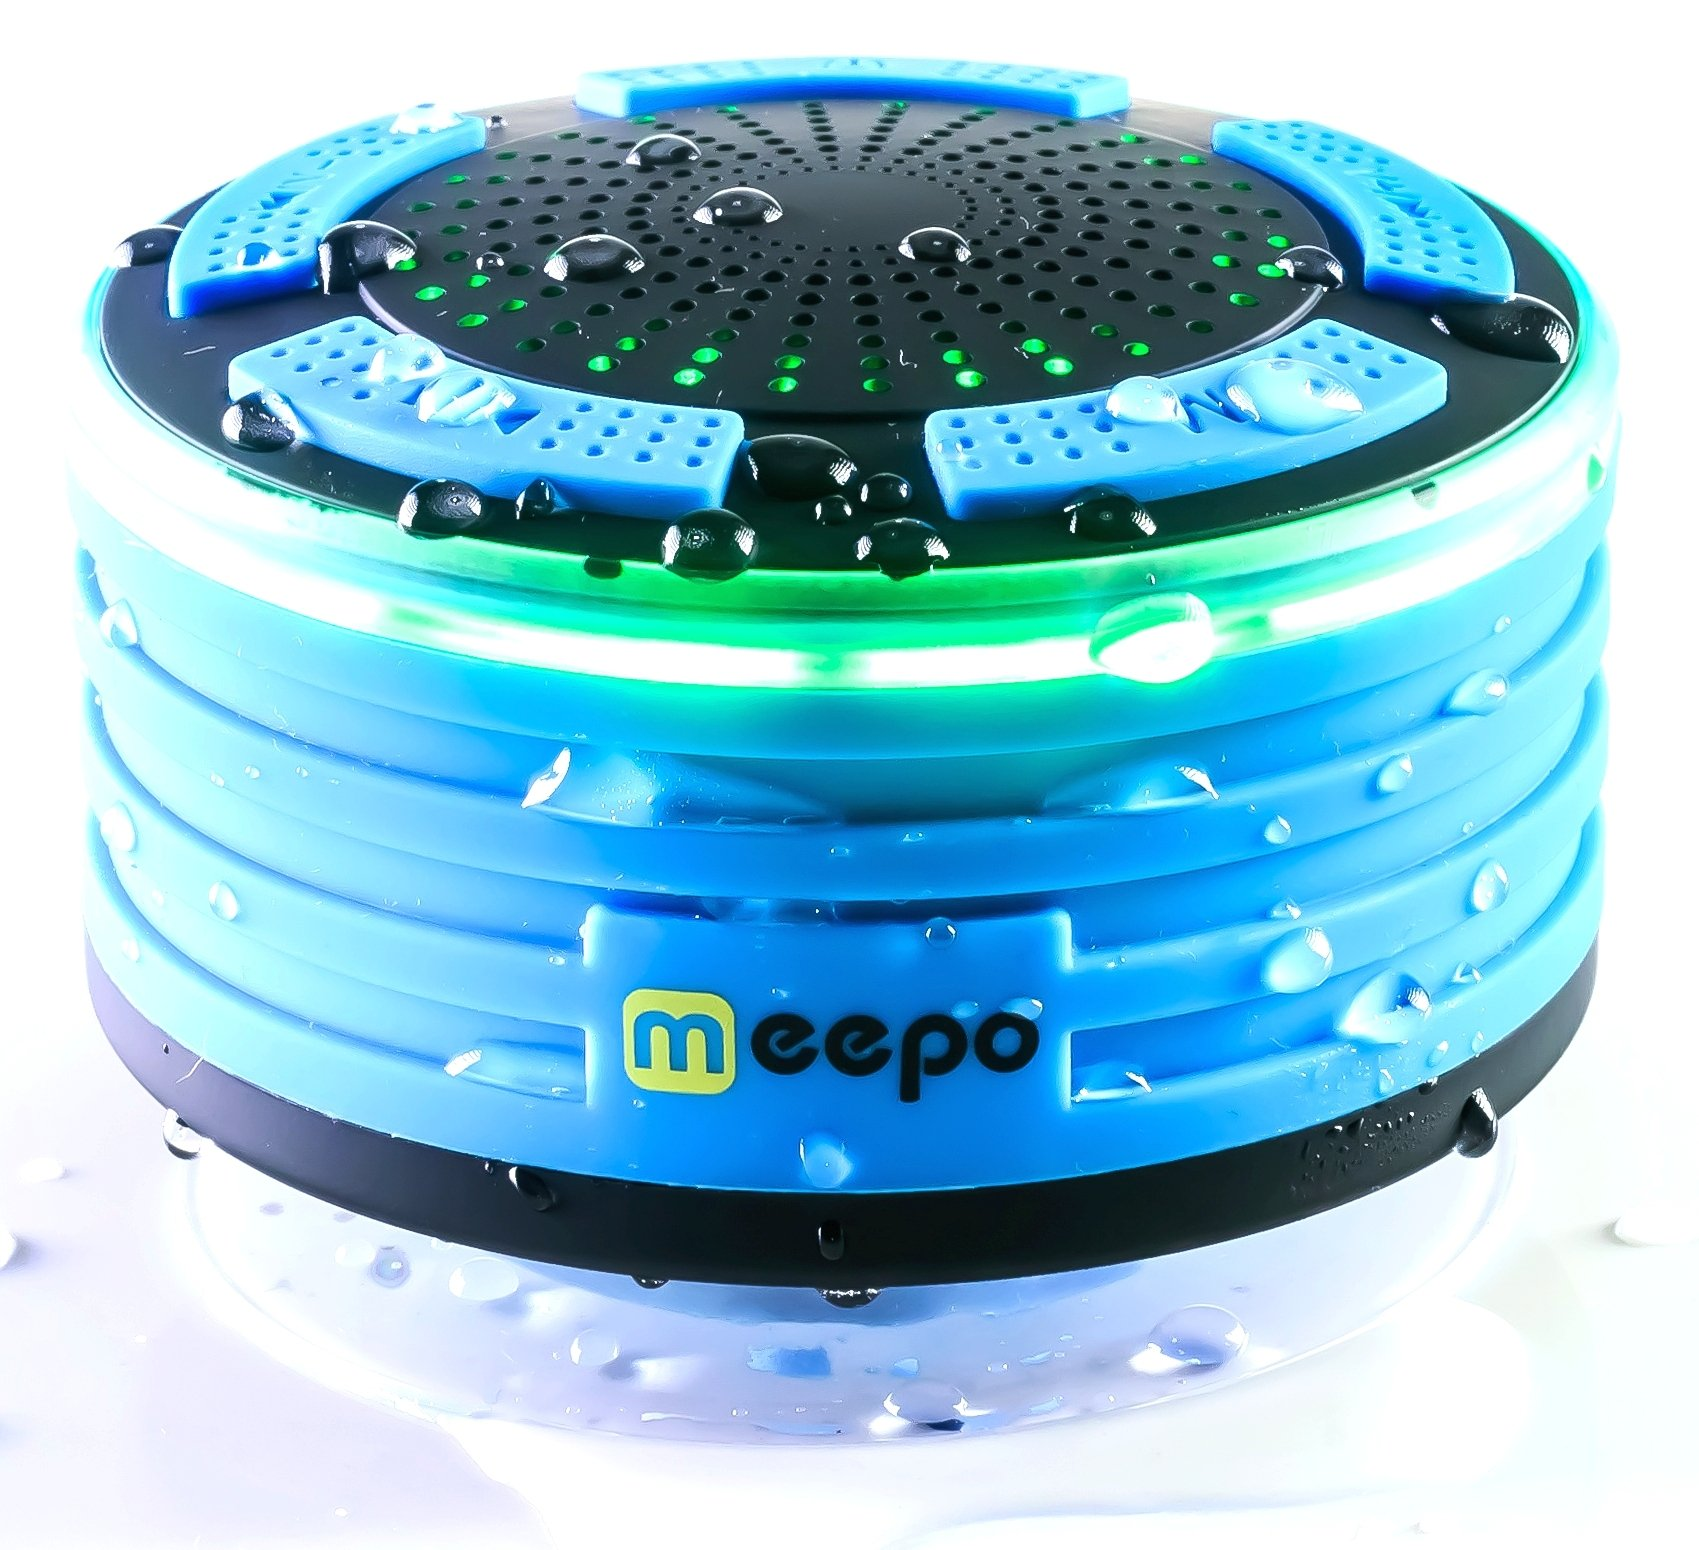 Waterproof Bluetooth Speakers Shower Radio | IPX7 Portable Wireless Shower Speaker with FM Radio and LED Mood Lights | Super Bass + HD Sound for Shower, Pool, Beach, Home, and Outdoor